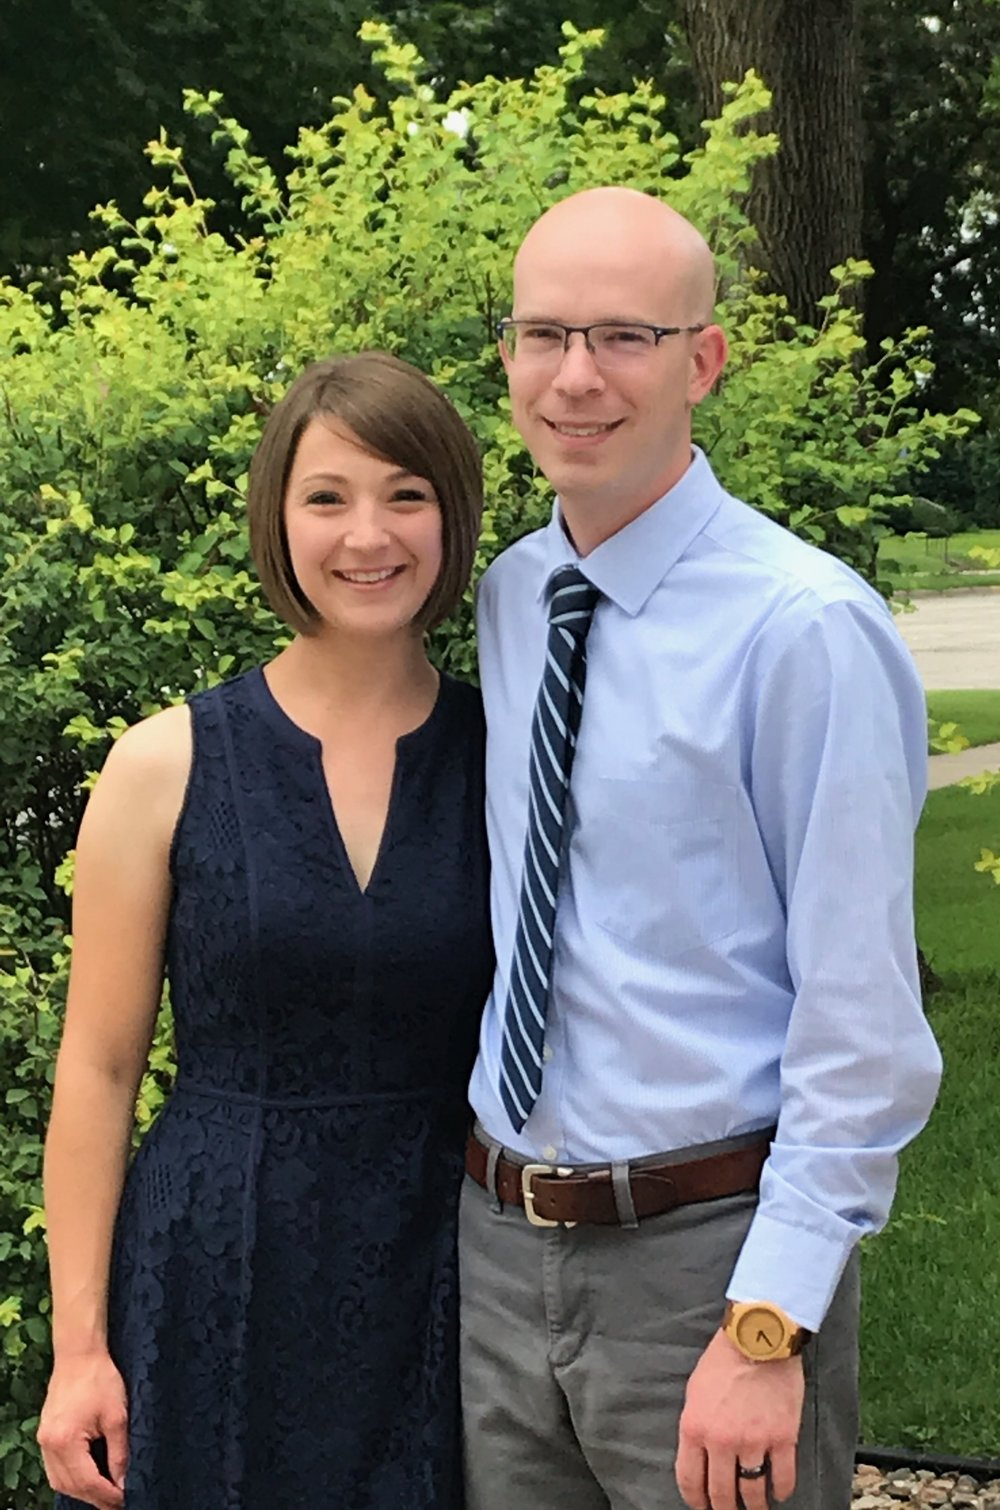 Aaron Sailer, SFLS class of 2003, lives in Omaha, NE, with his wife, Lisa. Aaron currently serves as director of finance at Concordia Lutheran Schools of Omaha.